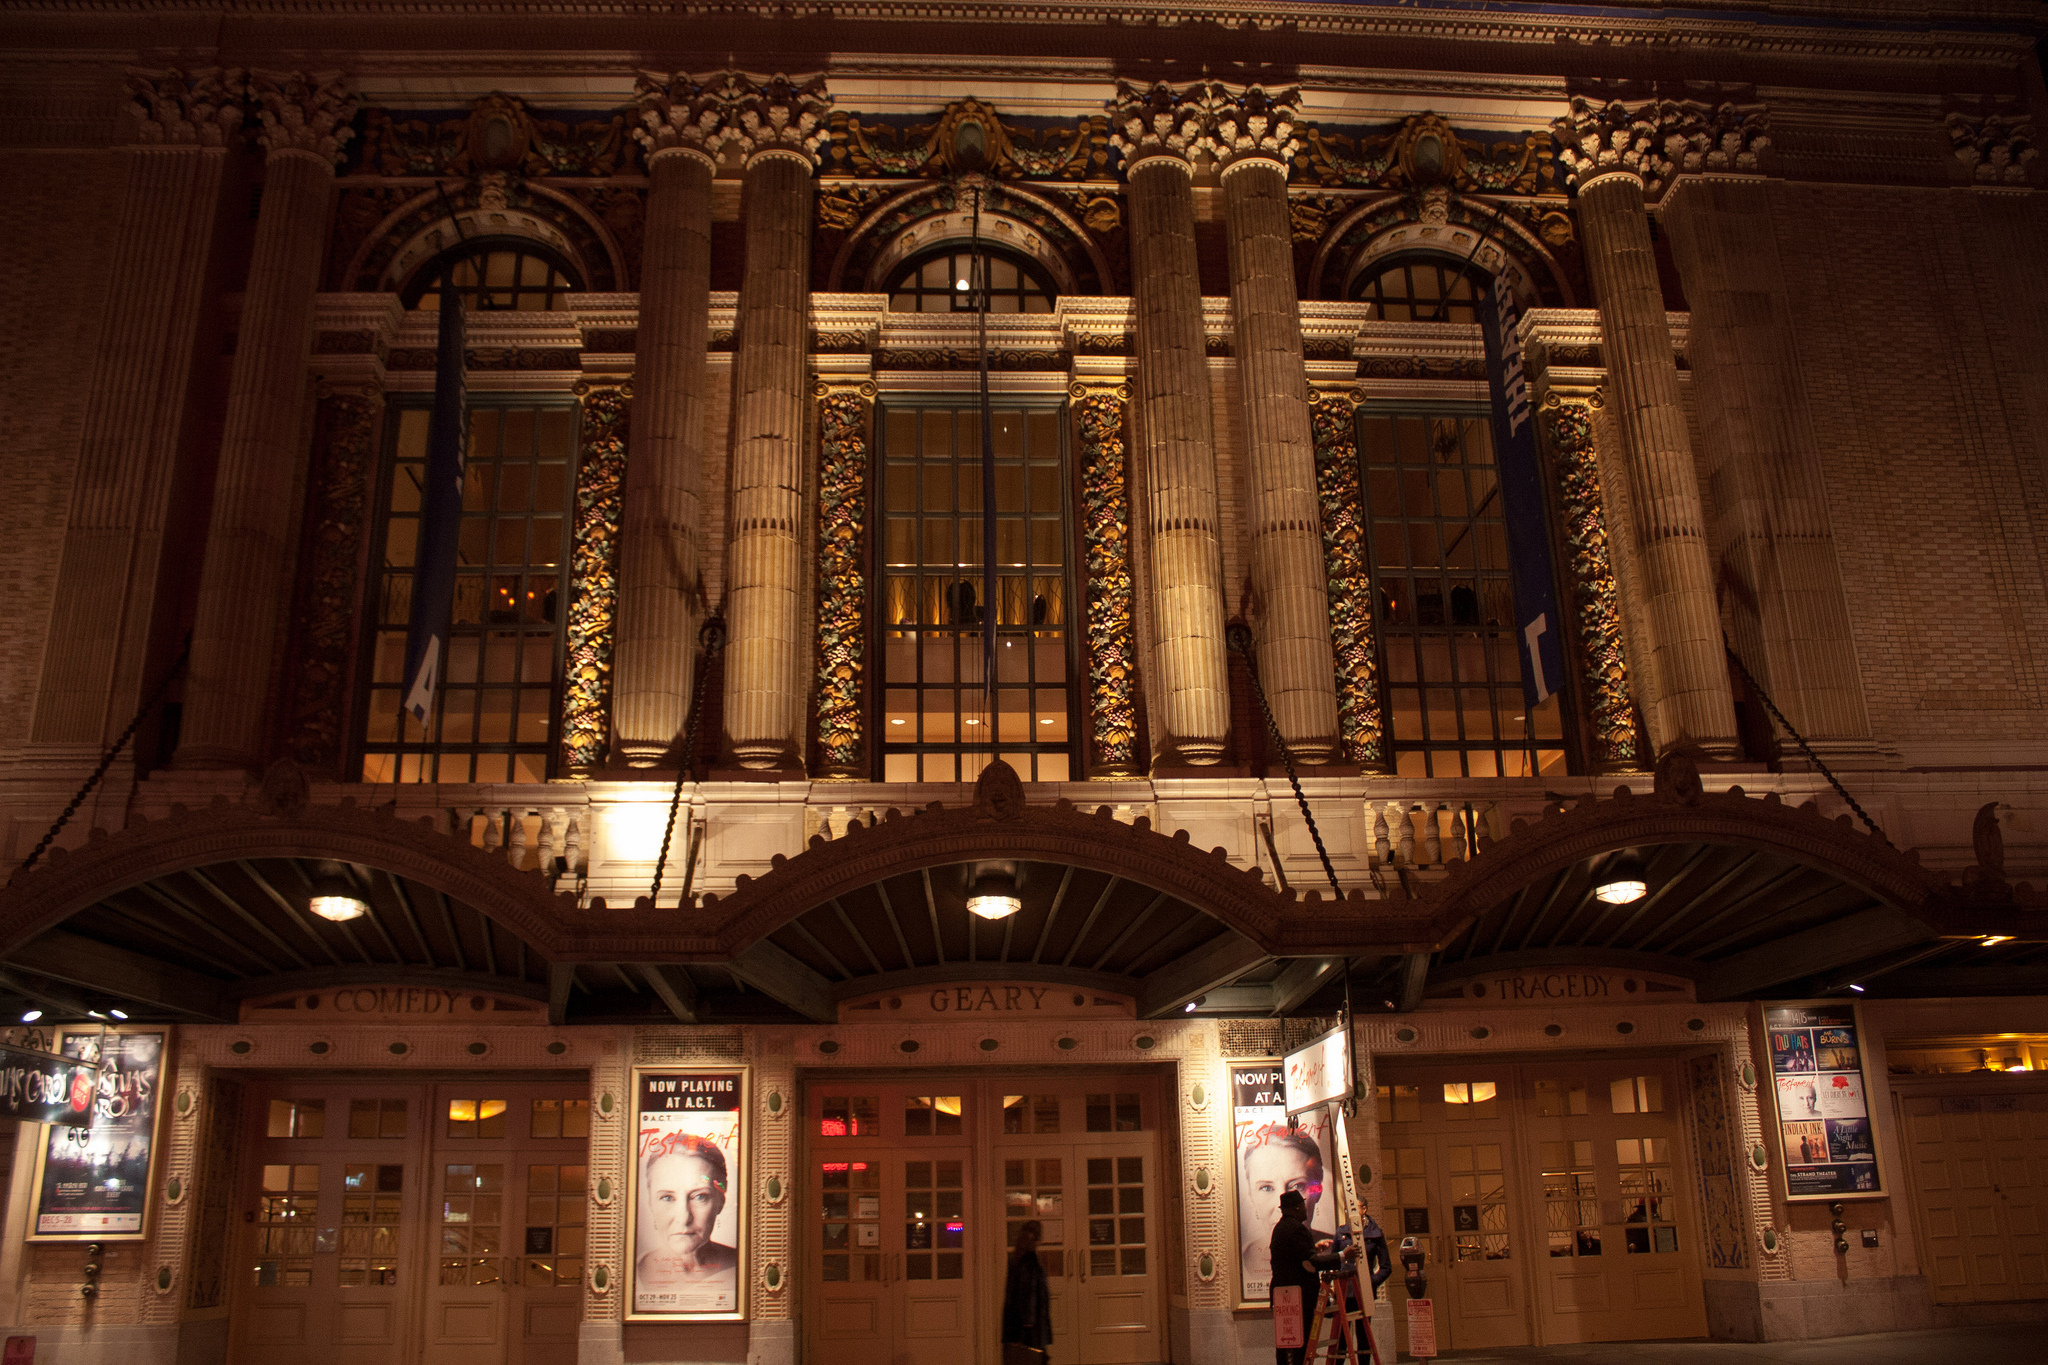 American Conservatory Theater stage